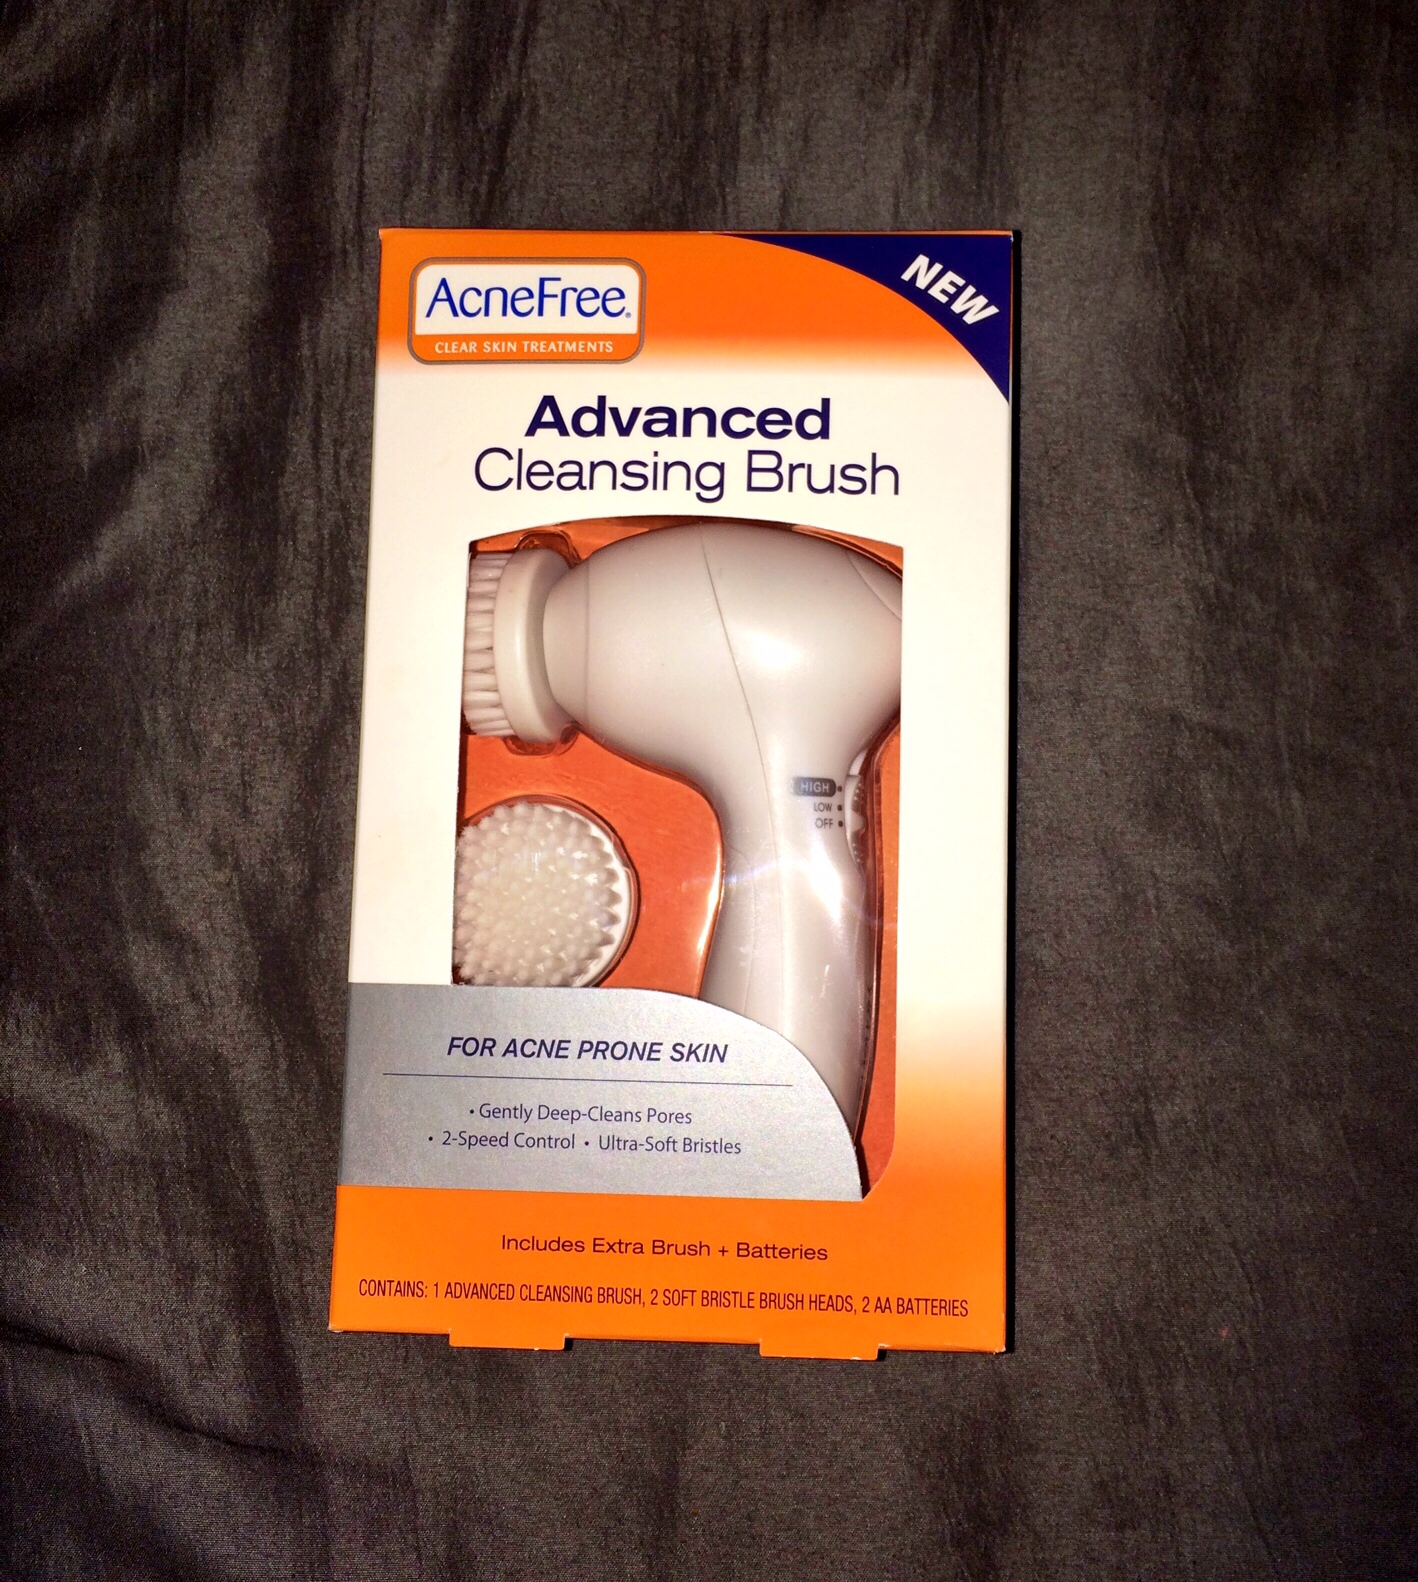 So Thats My Review Of The AcneFree Advanced Cleansing Brush Stop By A Target Or Store Near You And Grab One To Try Youll Be Glad Did